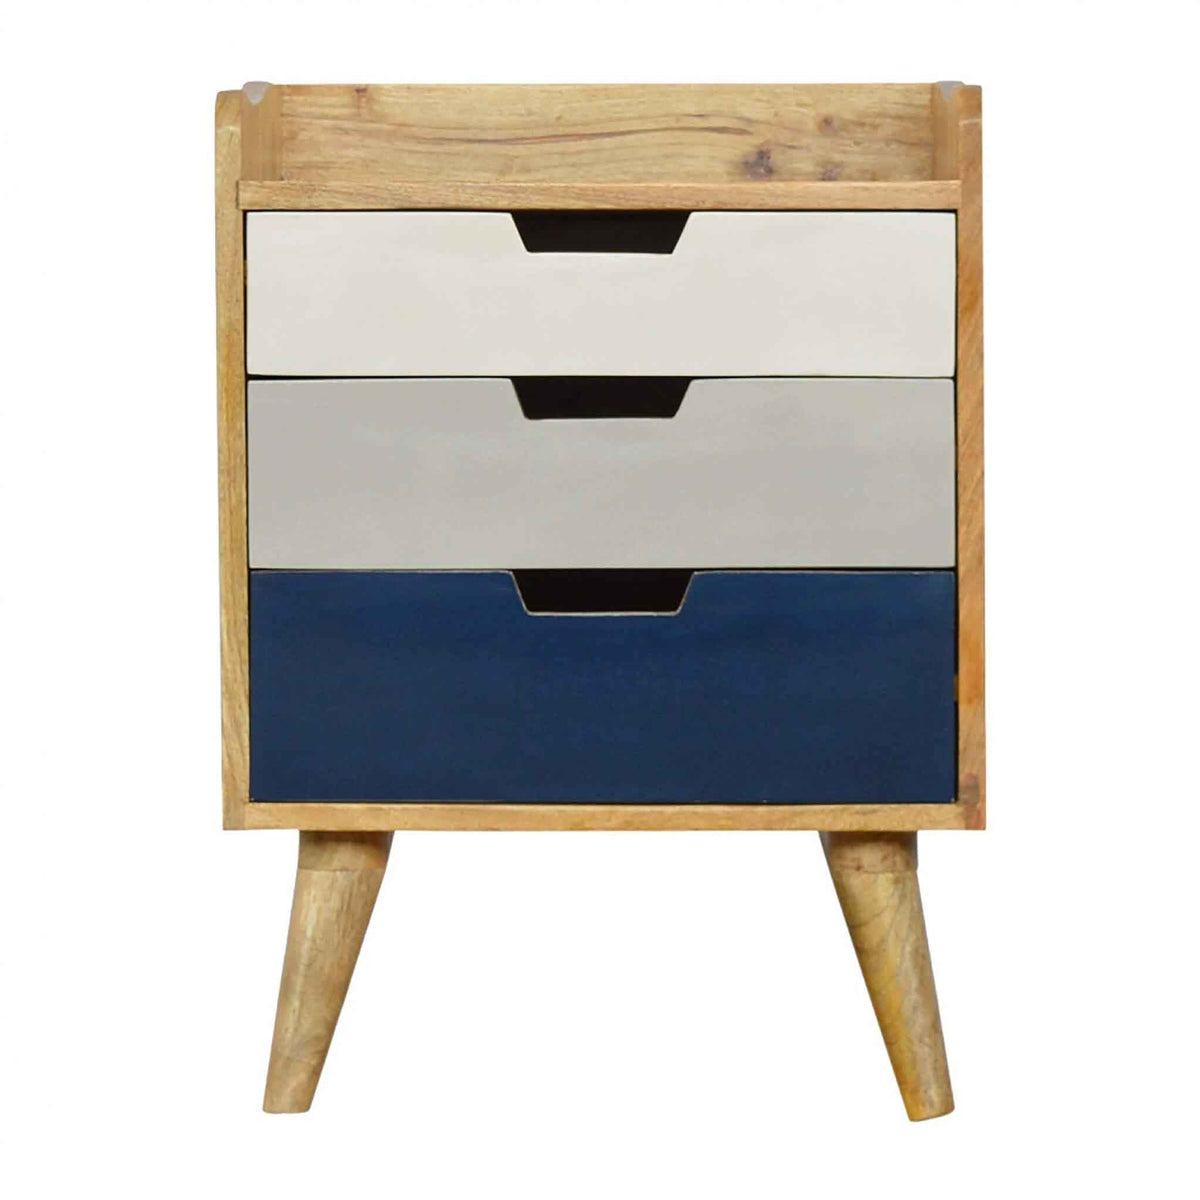 The Scandinavian Navy Painted Mango Wood Bedside Table with Storage